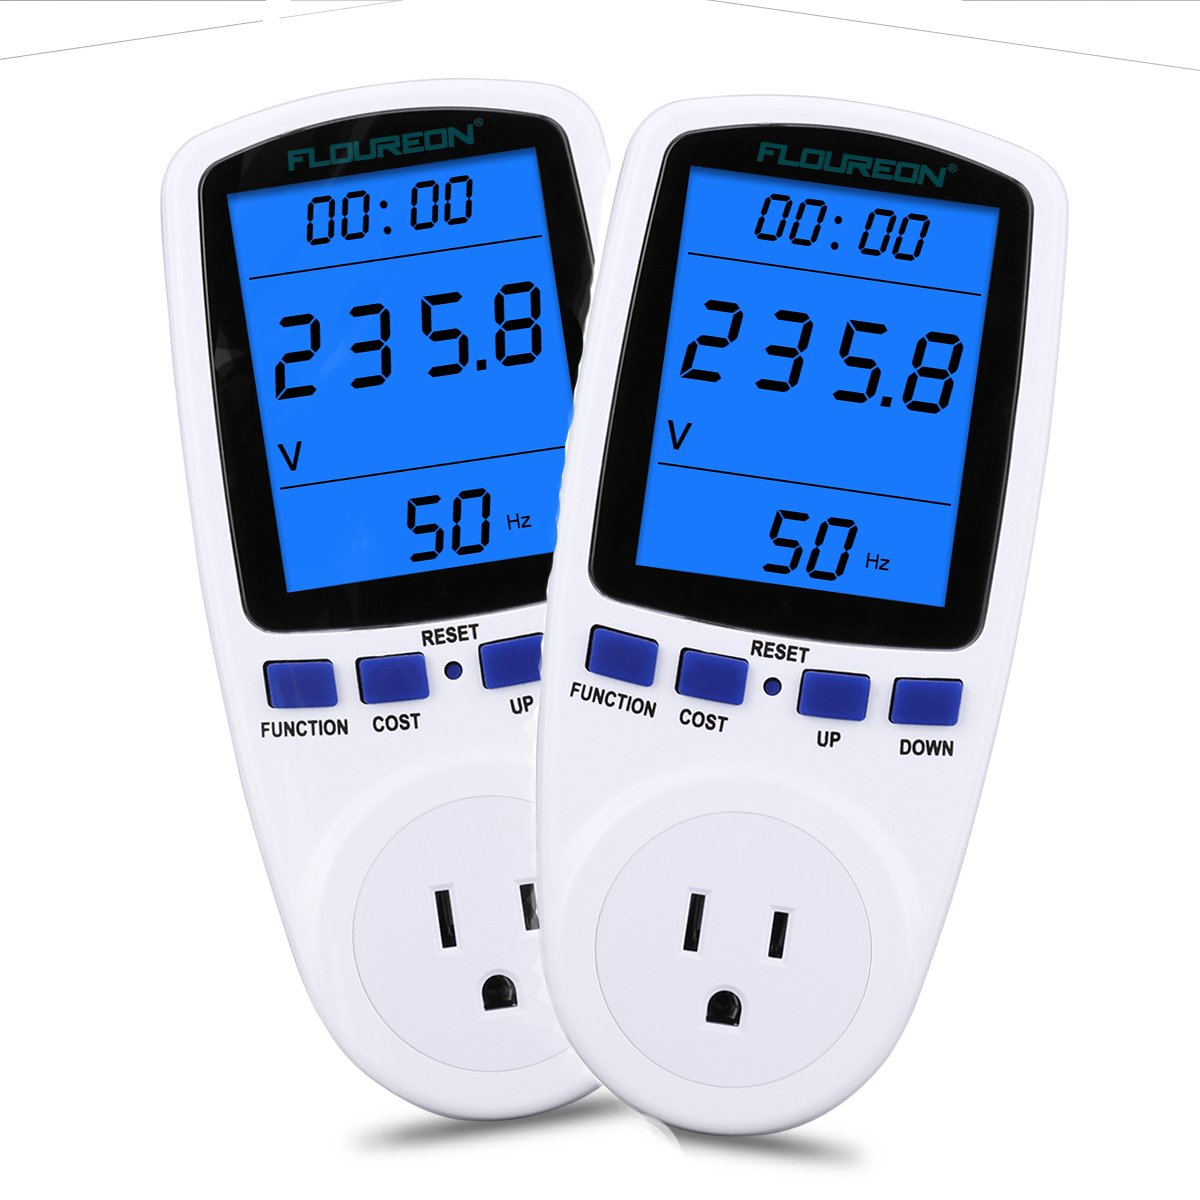 Electricity Usage Monitor, Floureon Power Meter Plug Energy Monitor with LCD Backlight Display Power Consumption Cost Meter Watt Voltage Amp Meter Calculator Analyzer [Energy Class A+++] - 2pack